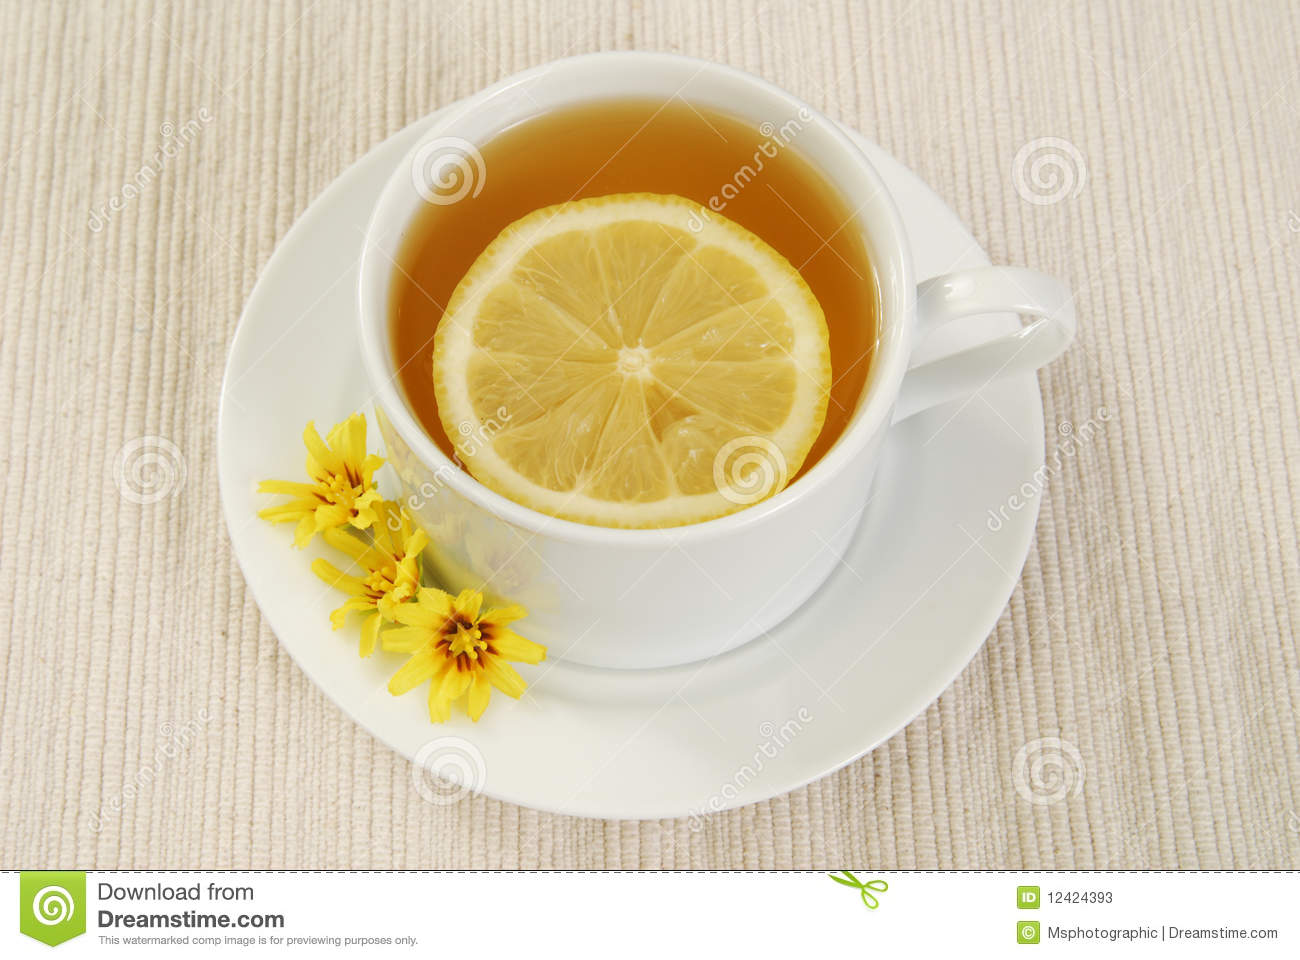 how to drink green tea with lemon